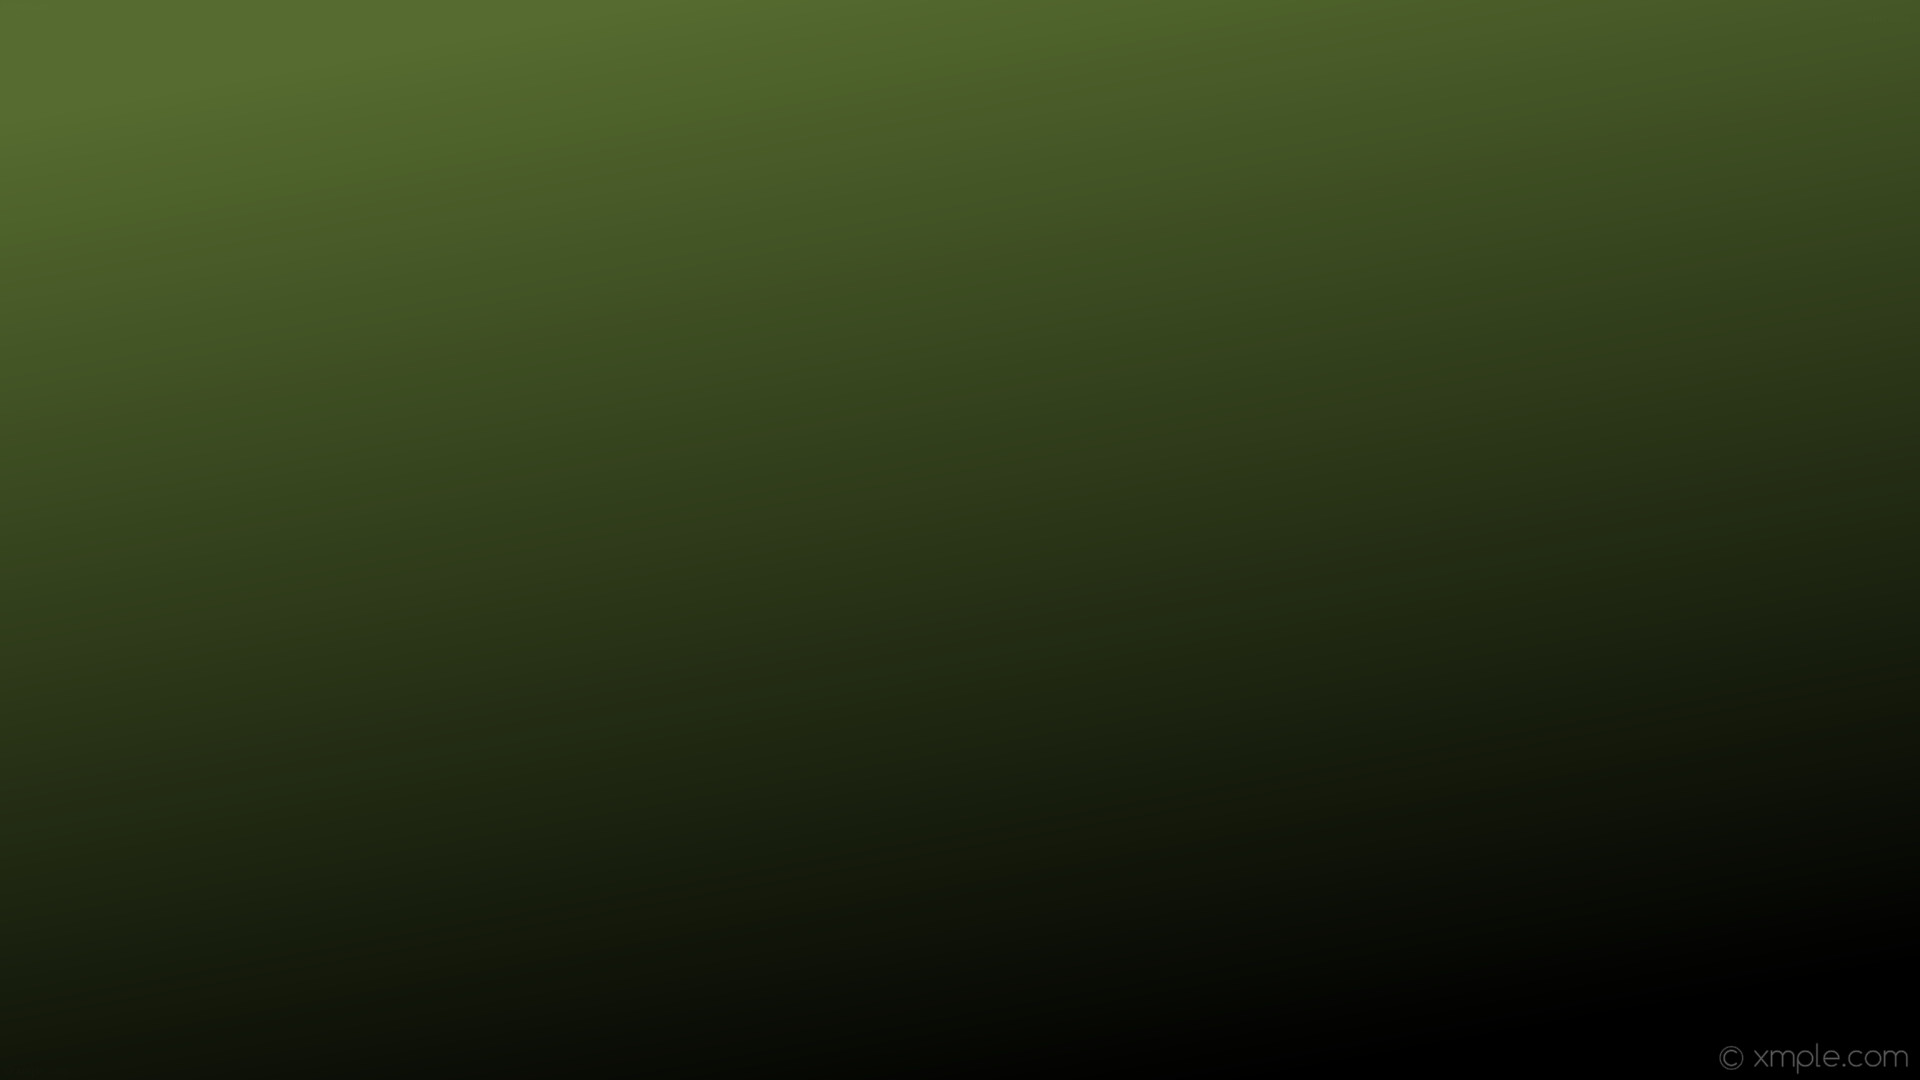 Olive Green Wallpaper (72+ Images)